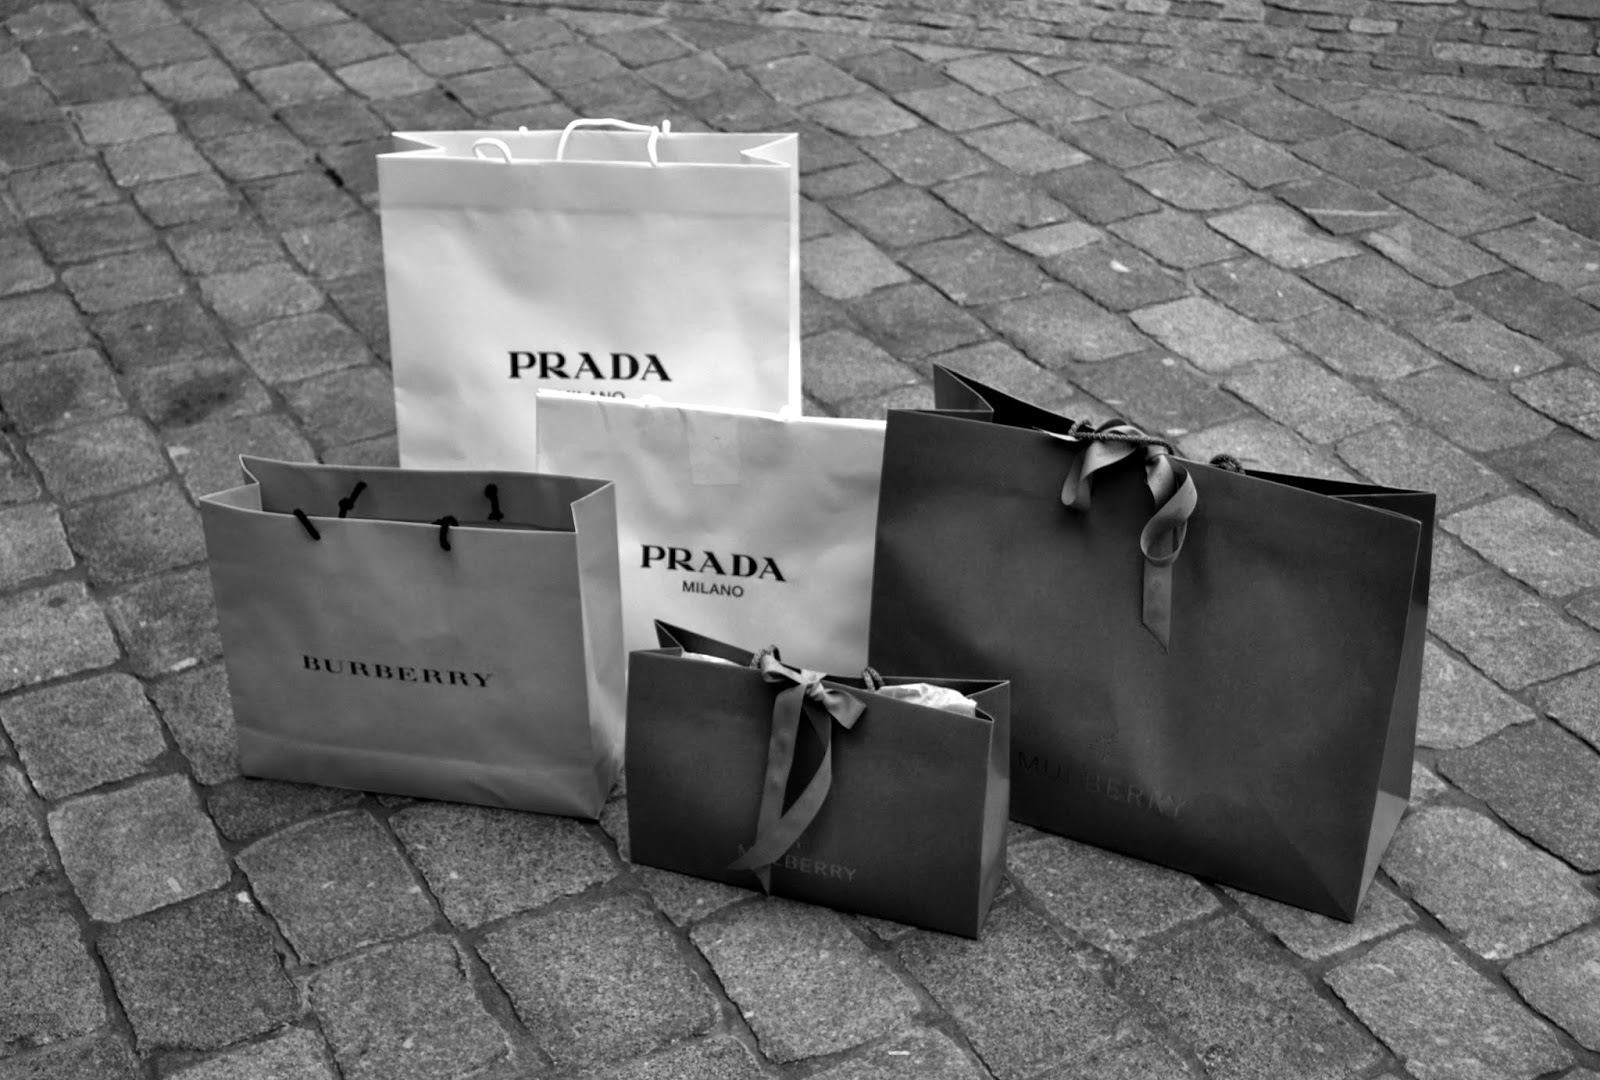 branded shopping bags images - photo #35